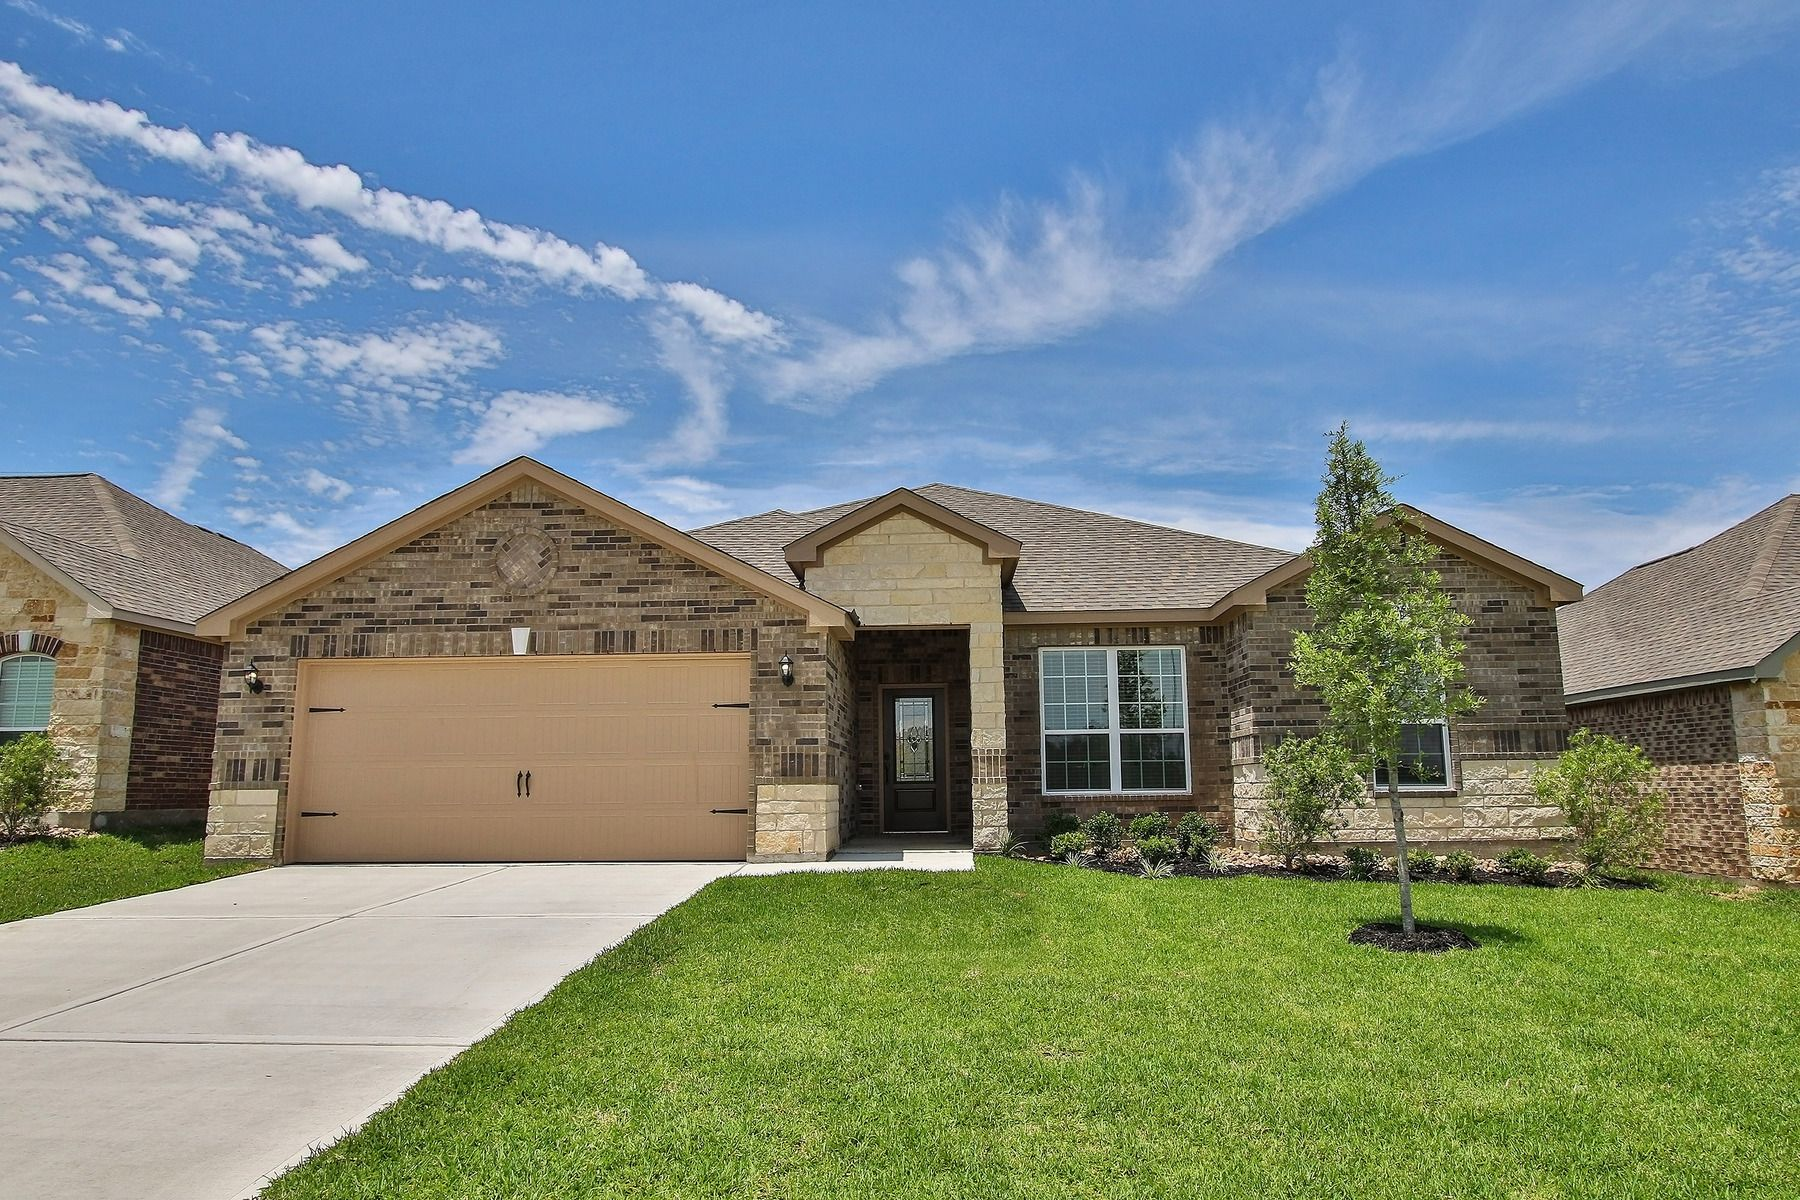 The Leland by LGI Homes at Bauer Landing:An attractive brick exterior with stone accents adds curb appeal to this incredible home at Bauer Landing.